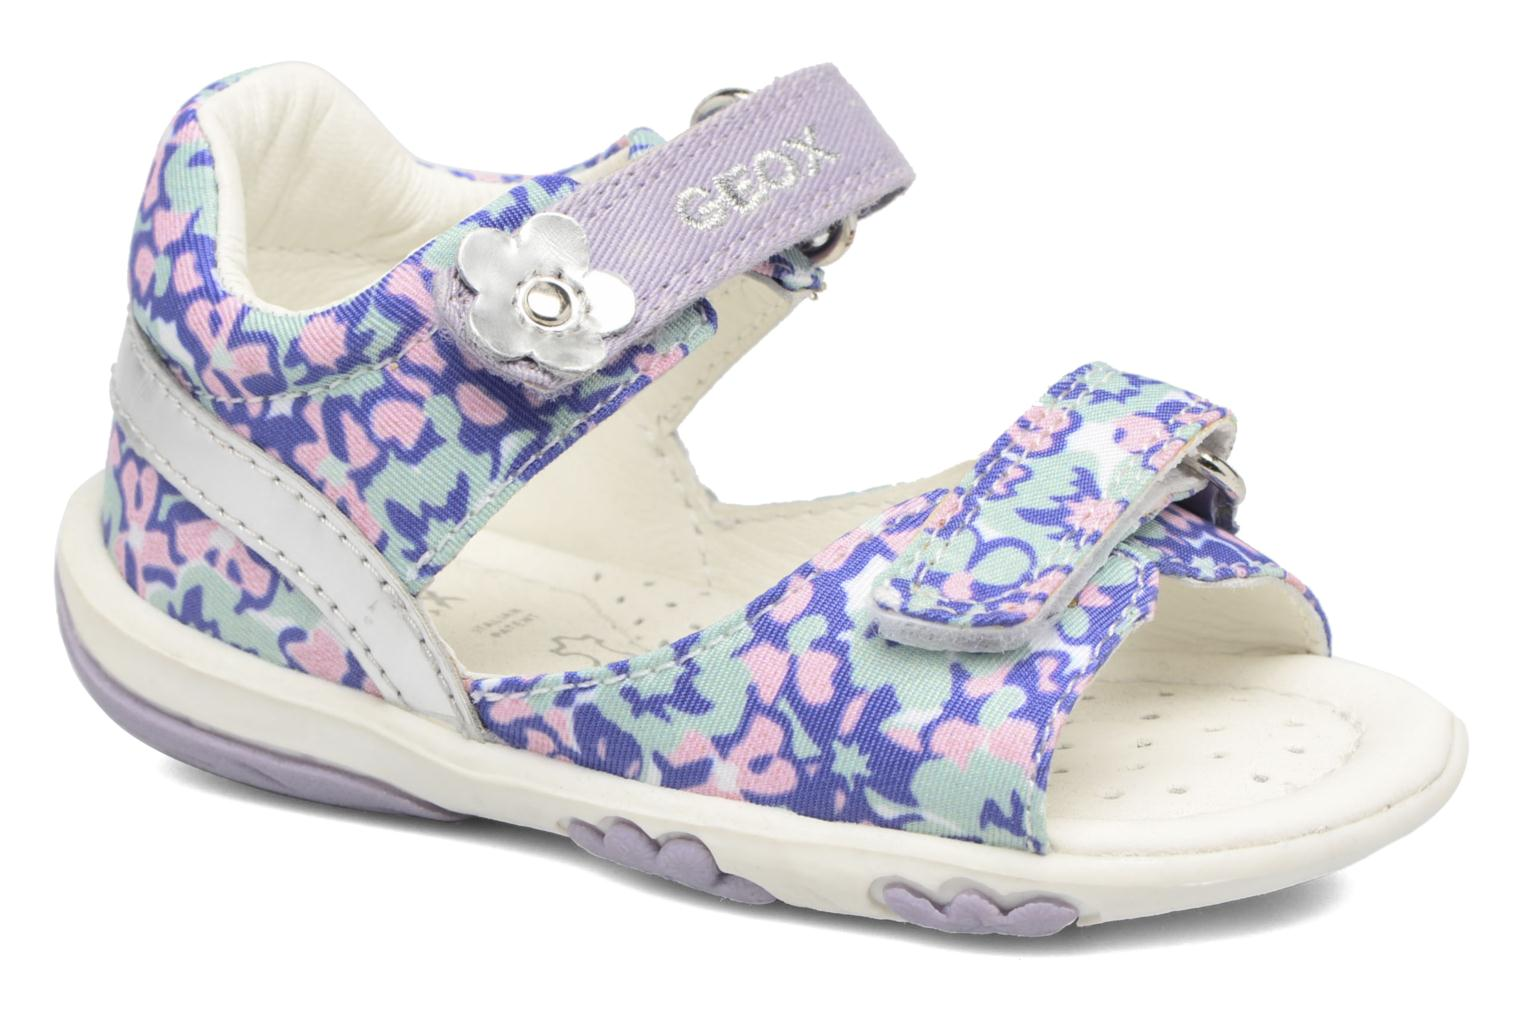 B SANDAL NICELY A White/lilac